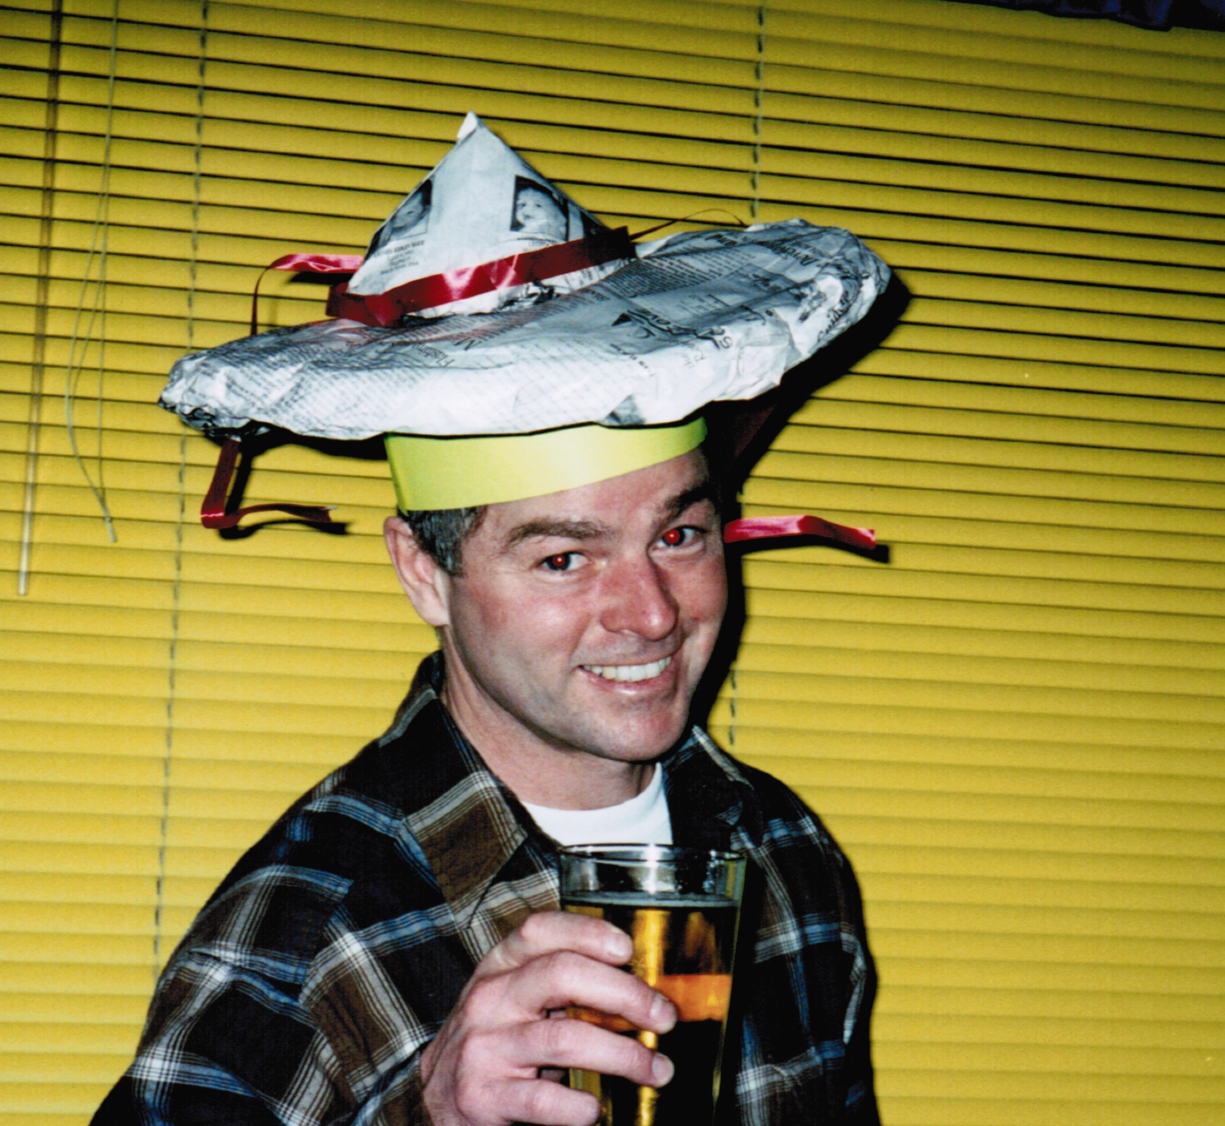 4-Mike Pond partying as a younger man.jpg